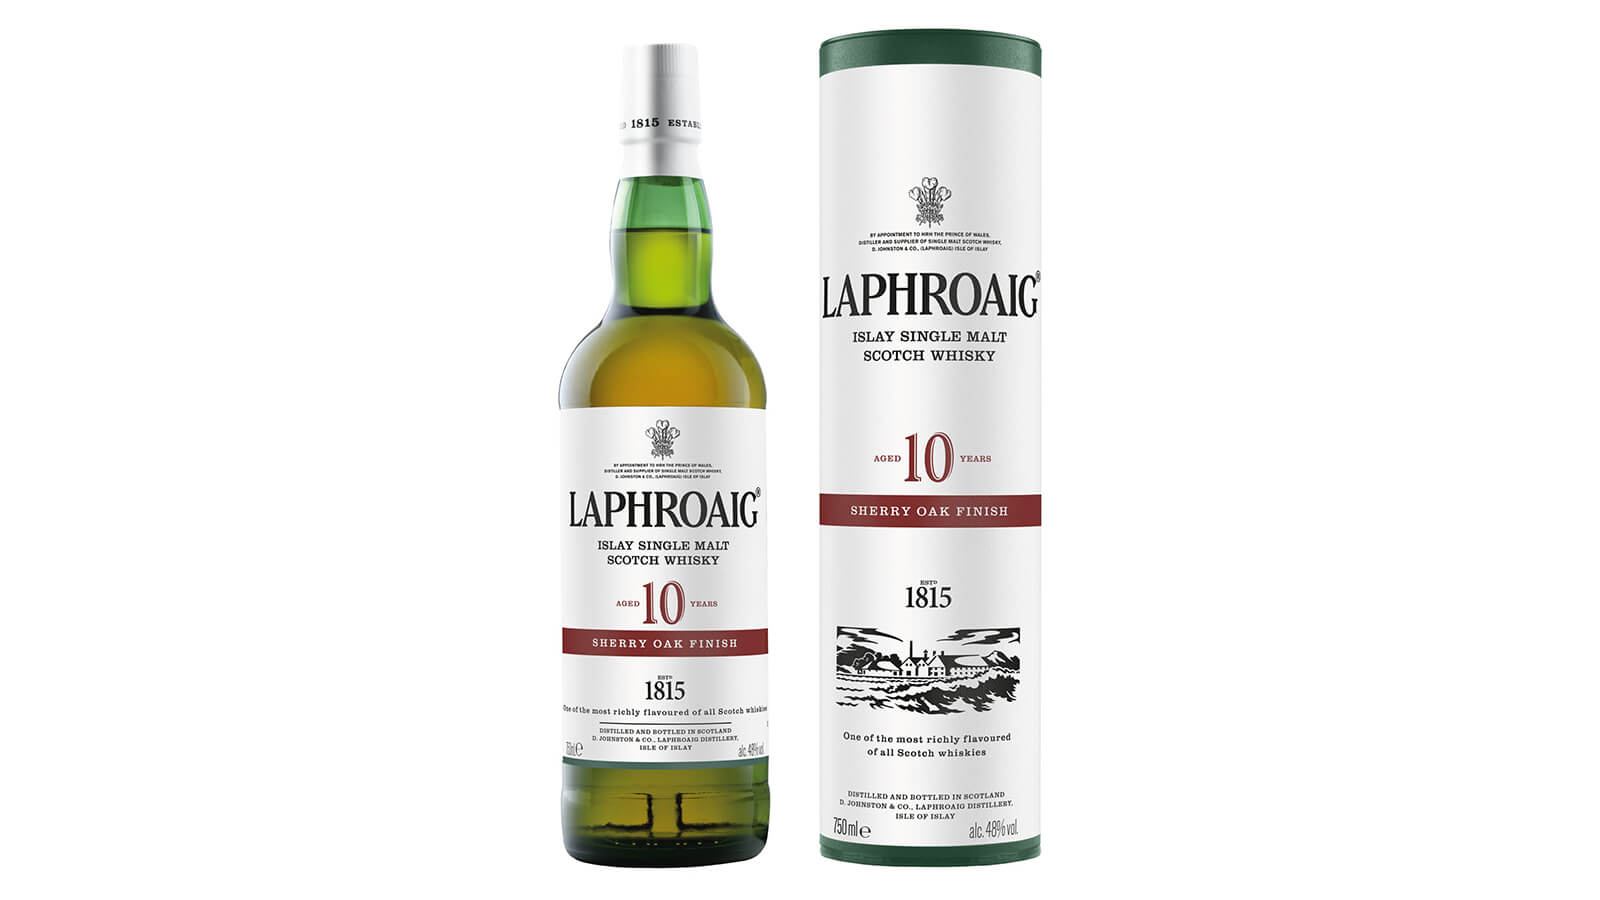 Laphroaig Unveils 10 YO Sherry Oak Finish